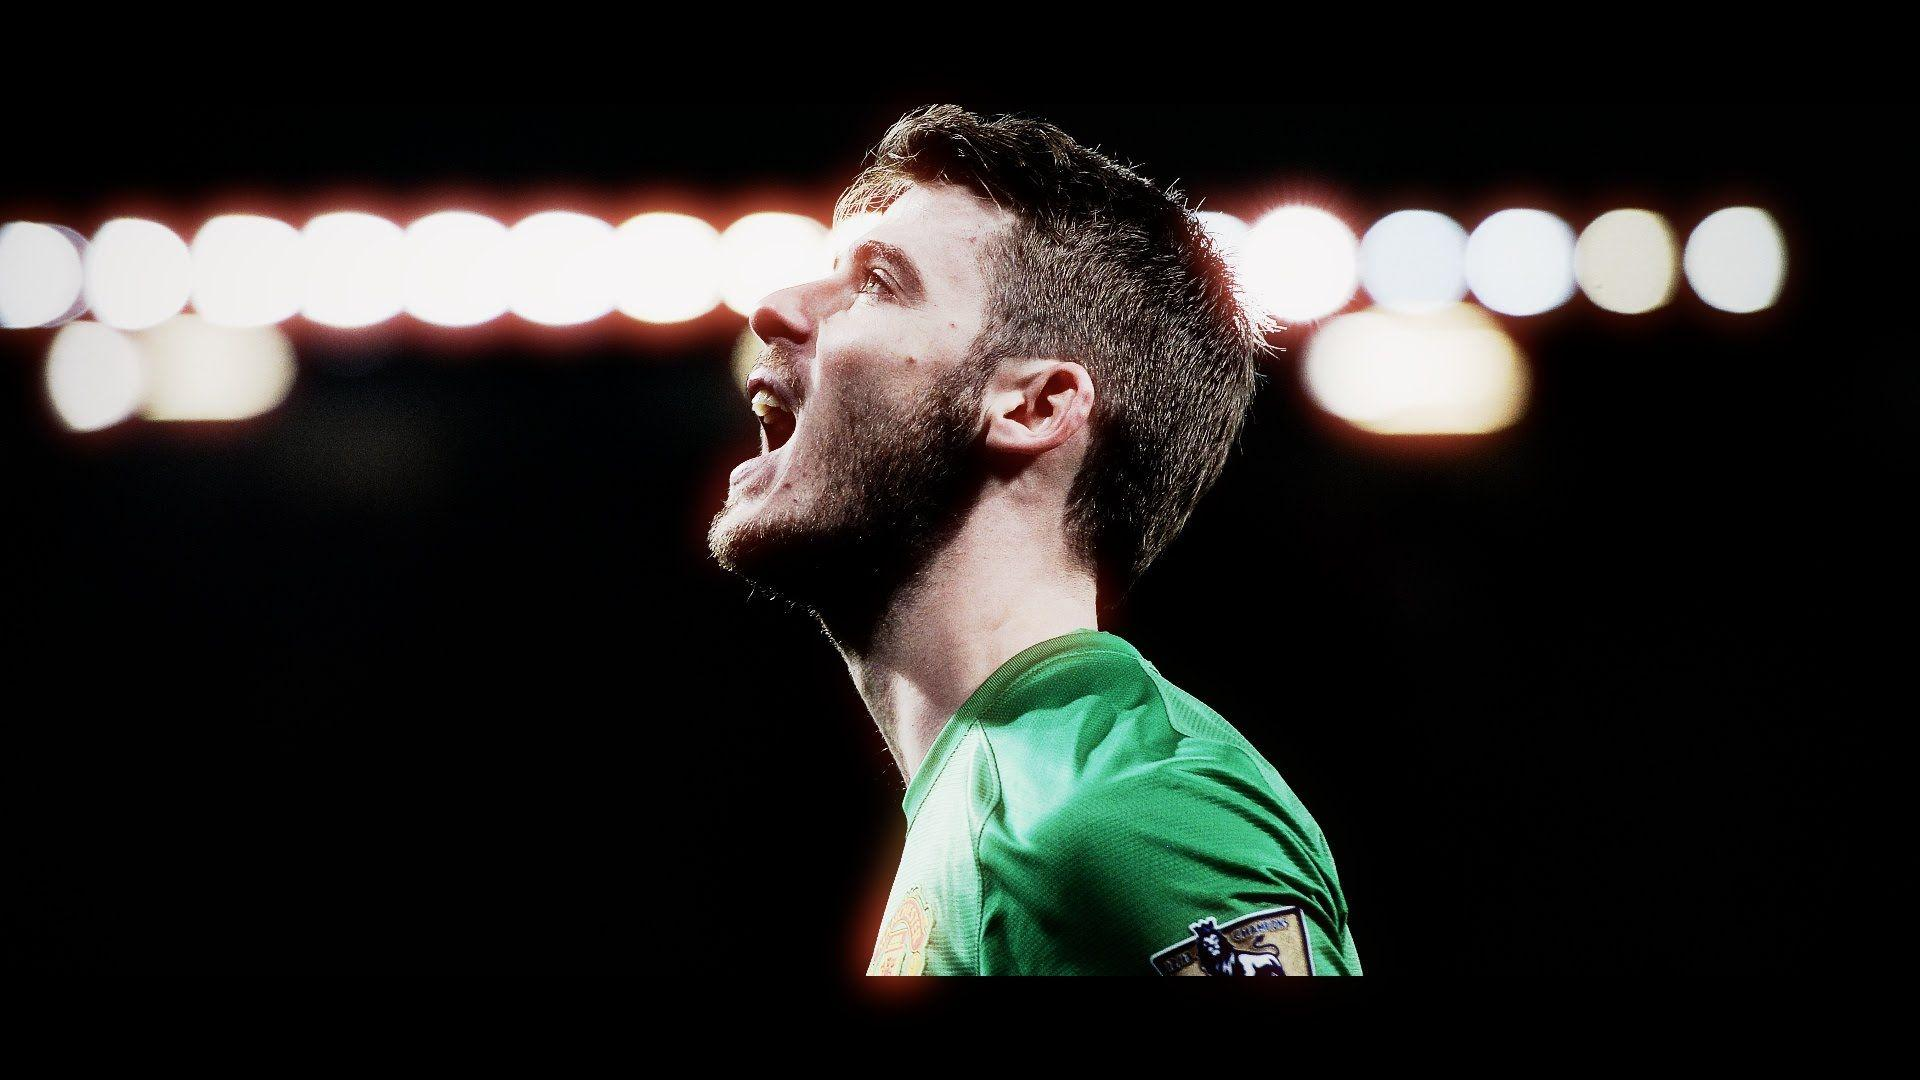 David De Gea HD Desktop Wallpapers At Manchester United